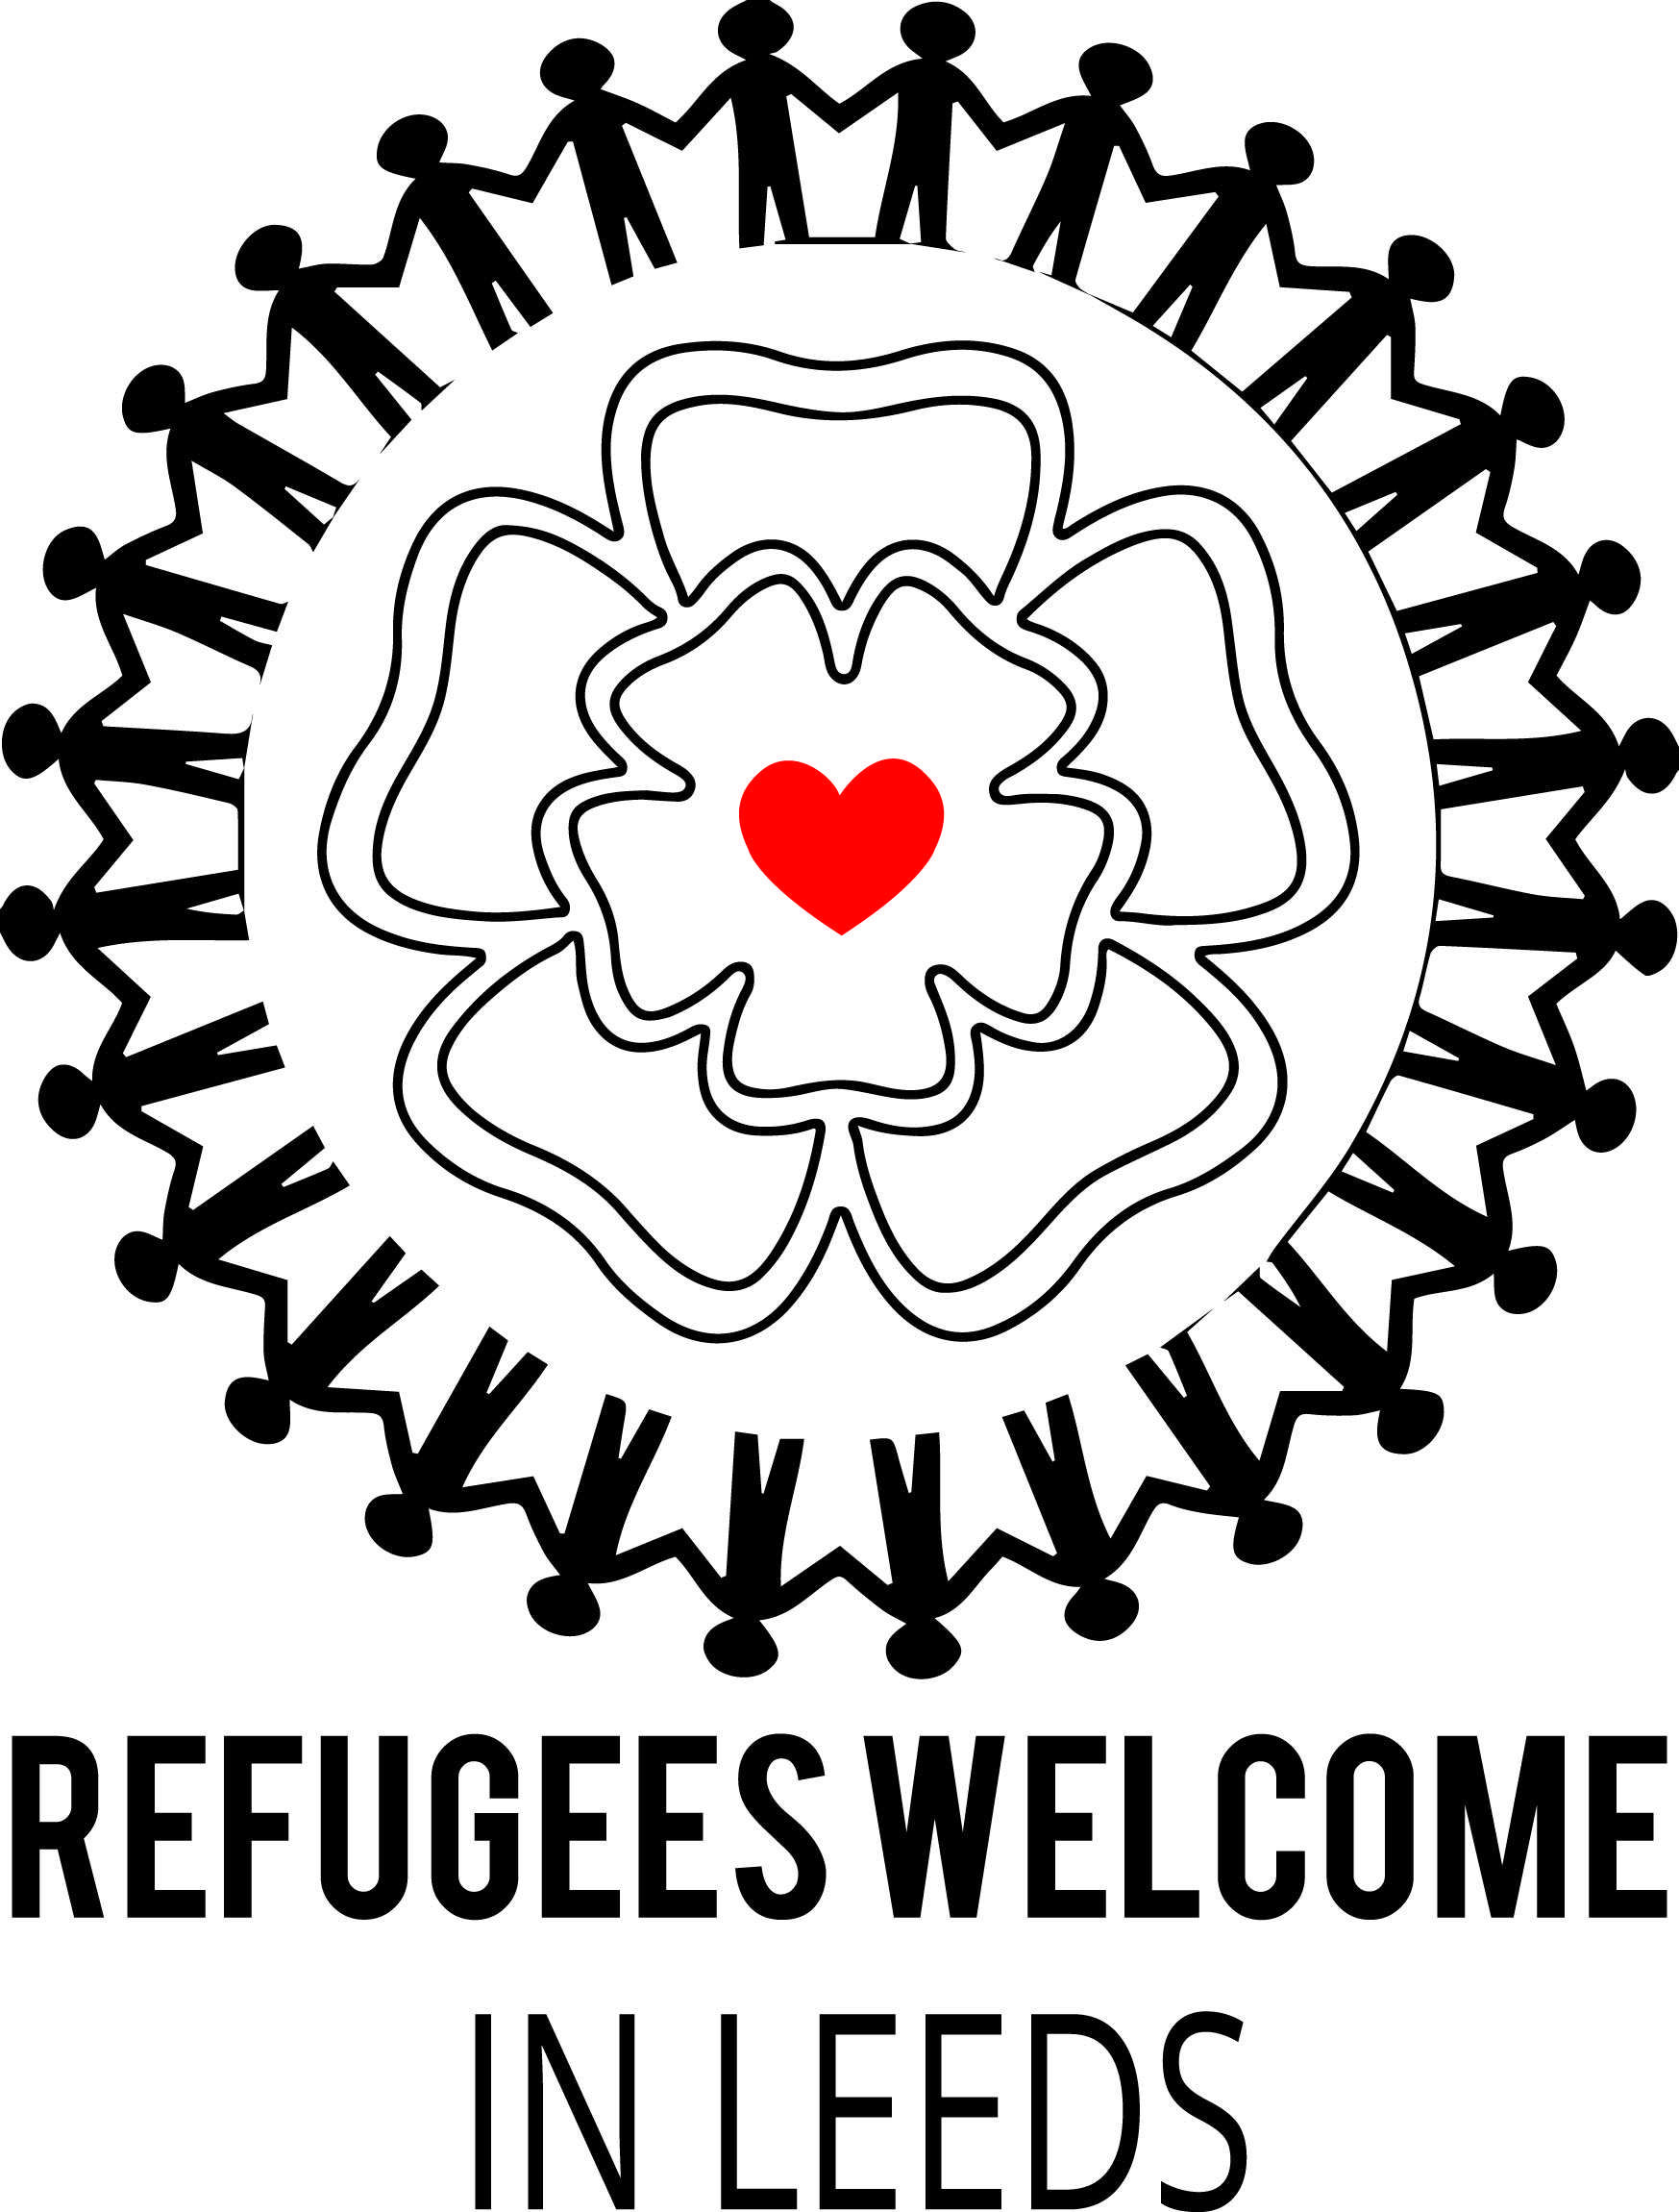 Refugee Logo With Images Charity Logos Refugee Charity Refugee